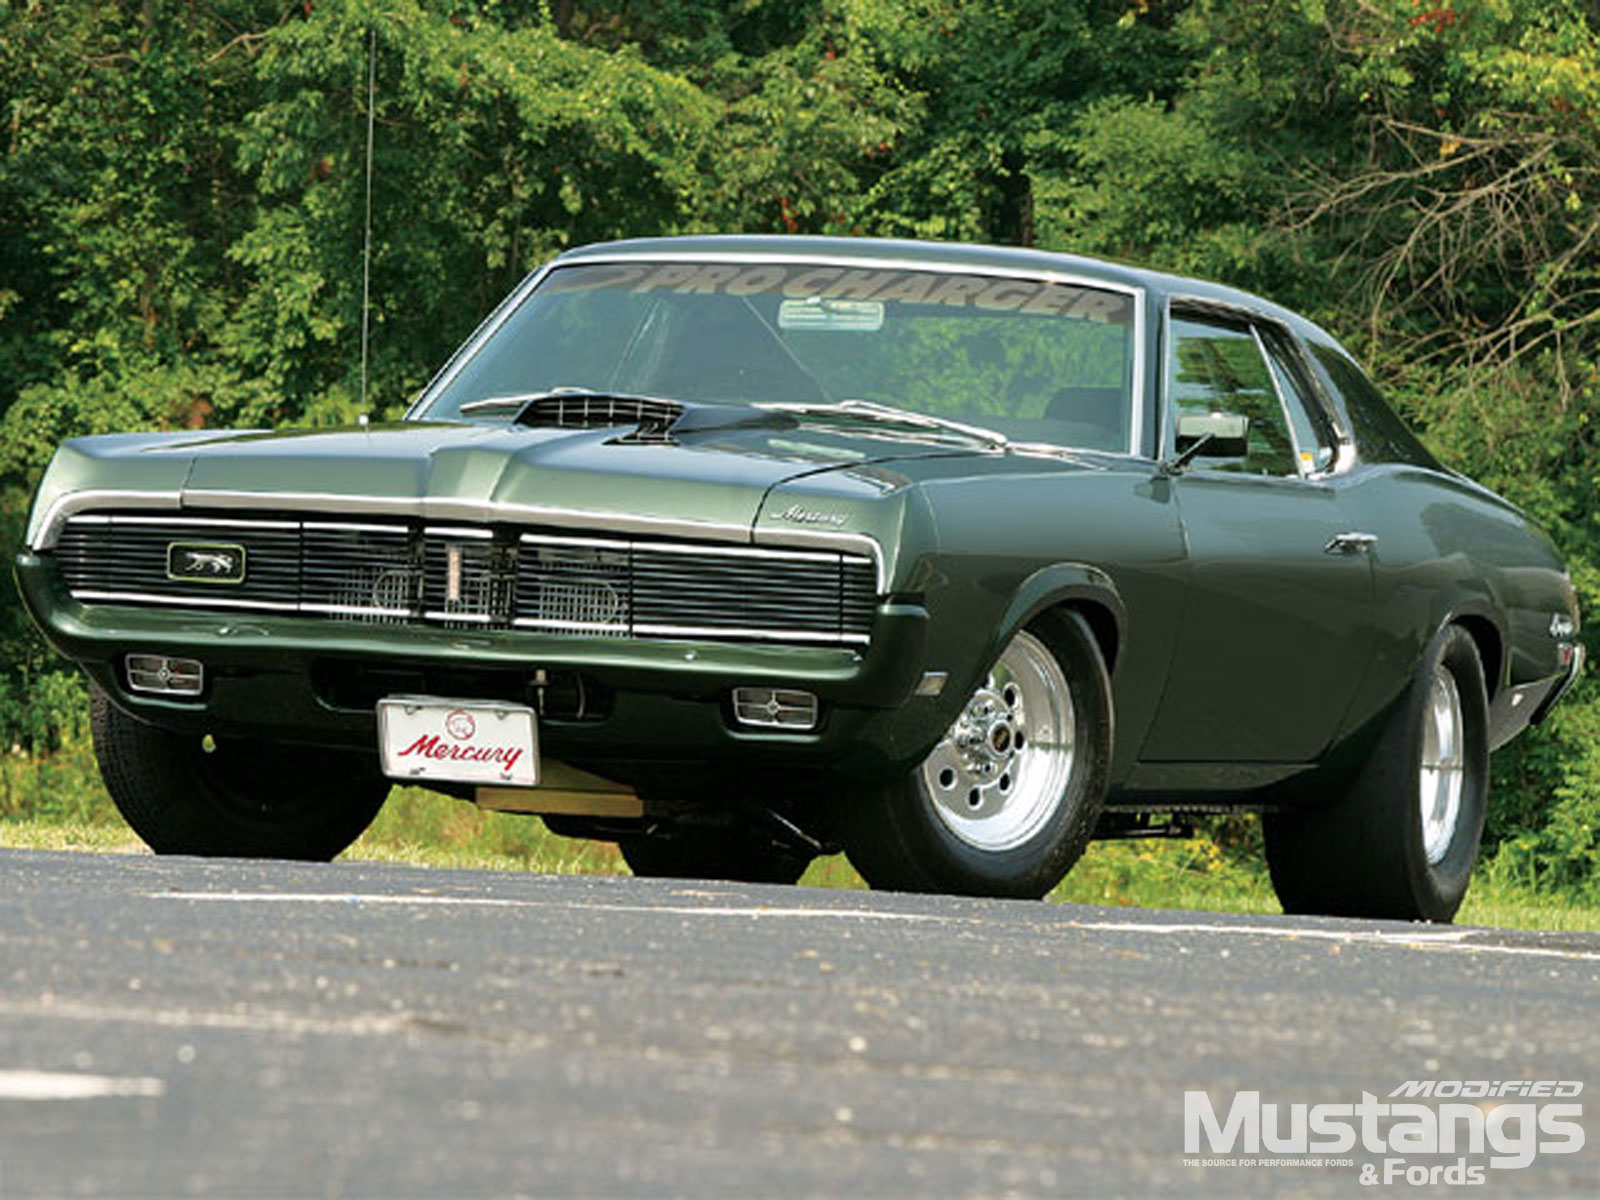 1969 Mercury Cougar Front View